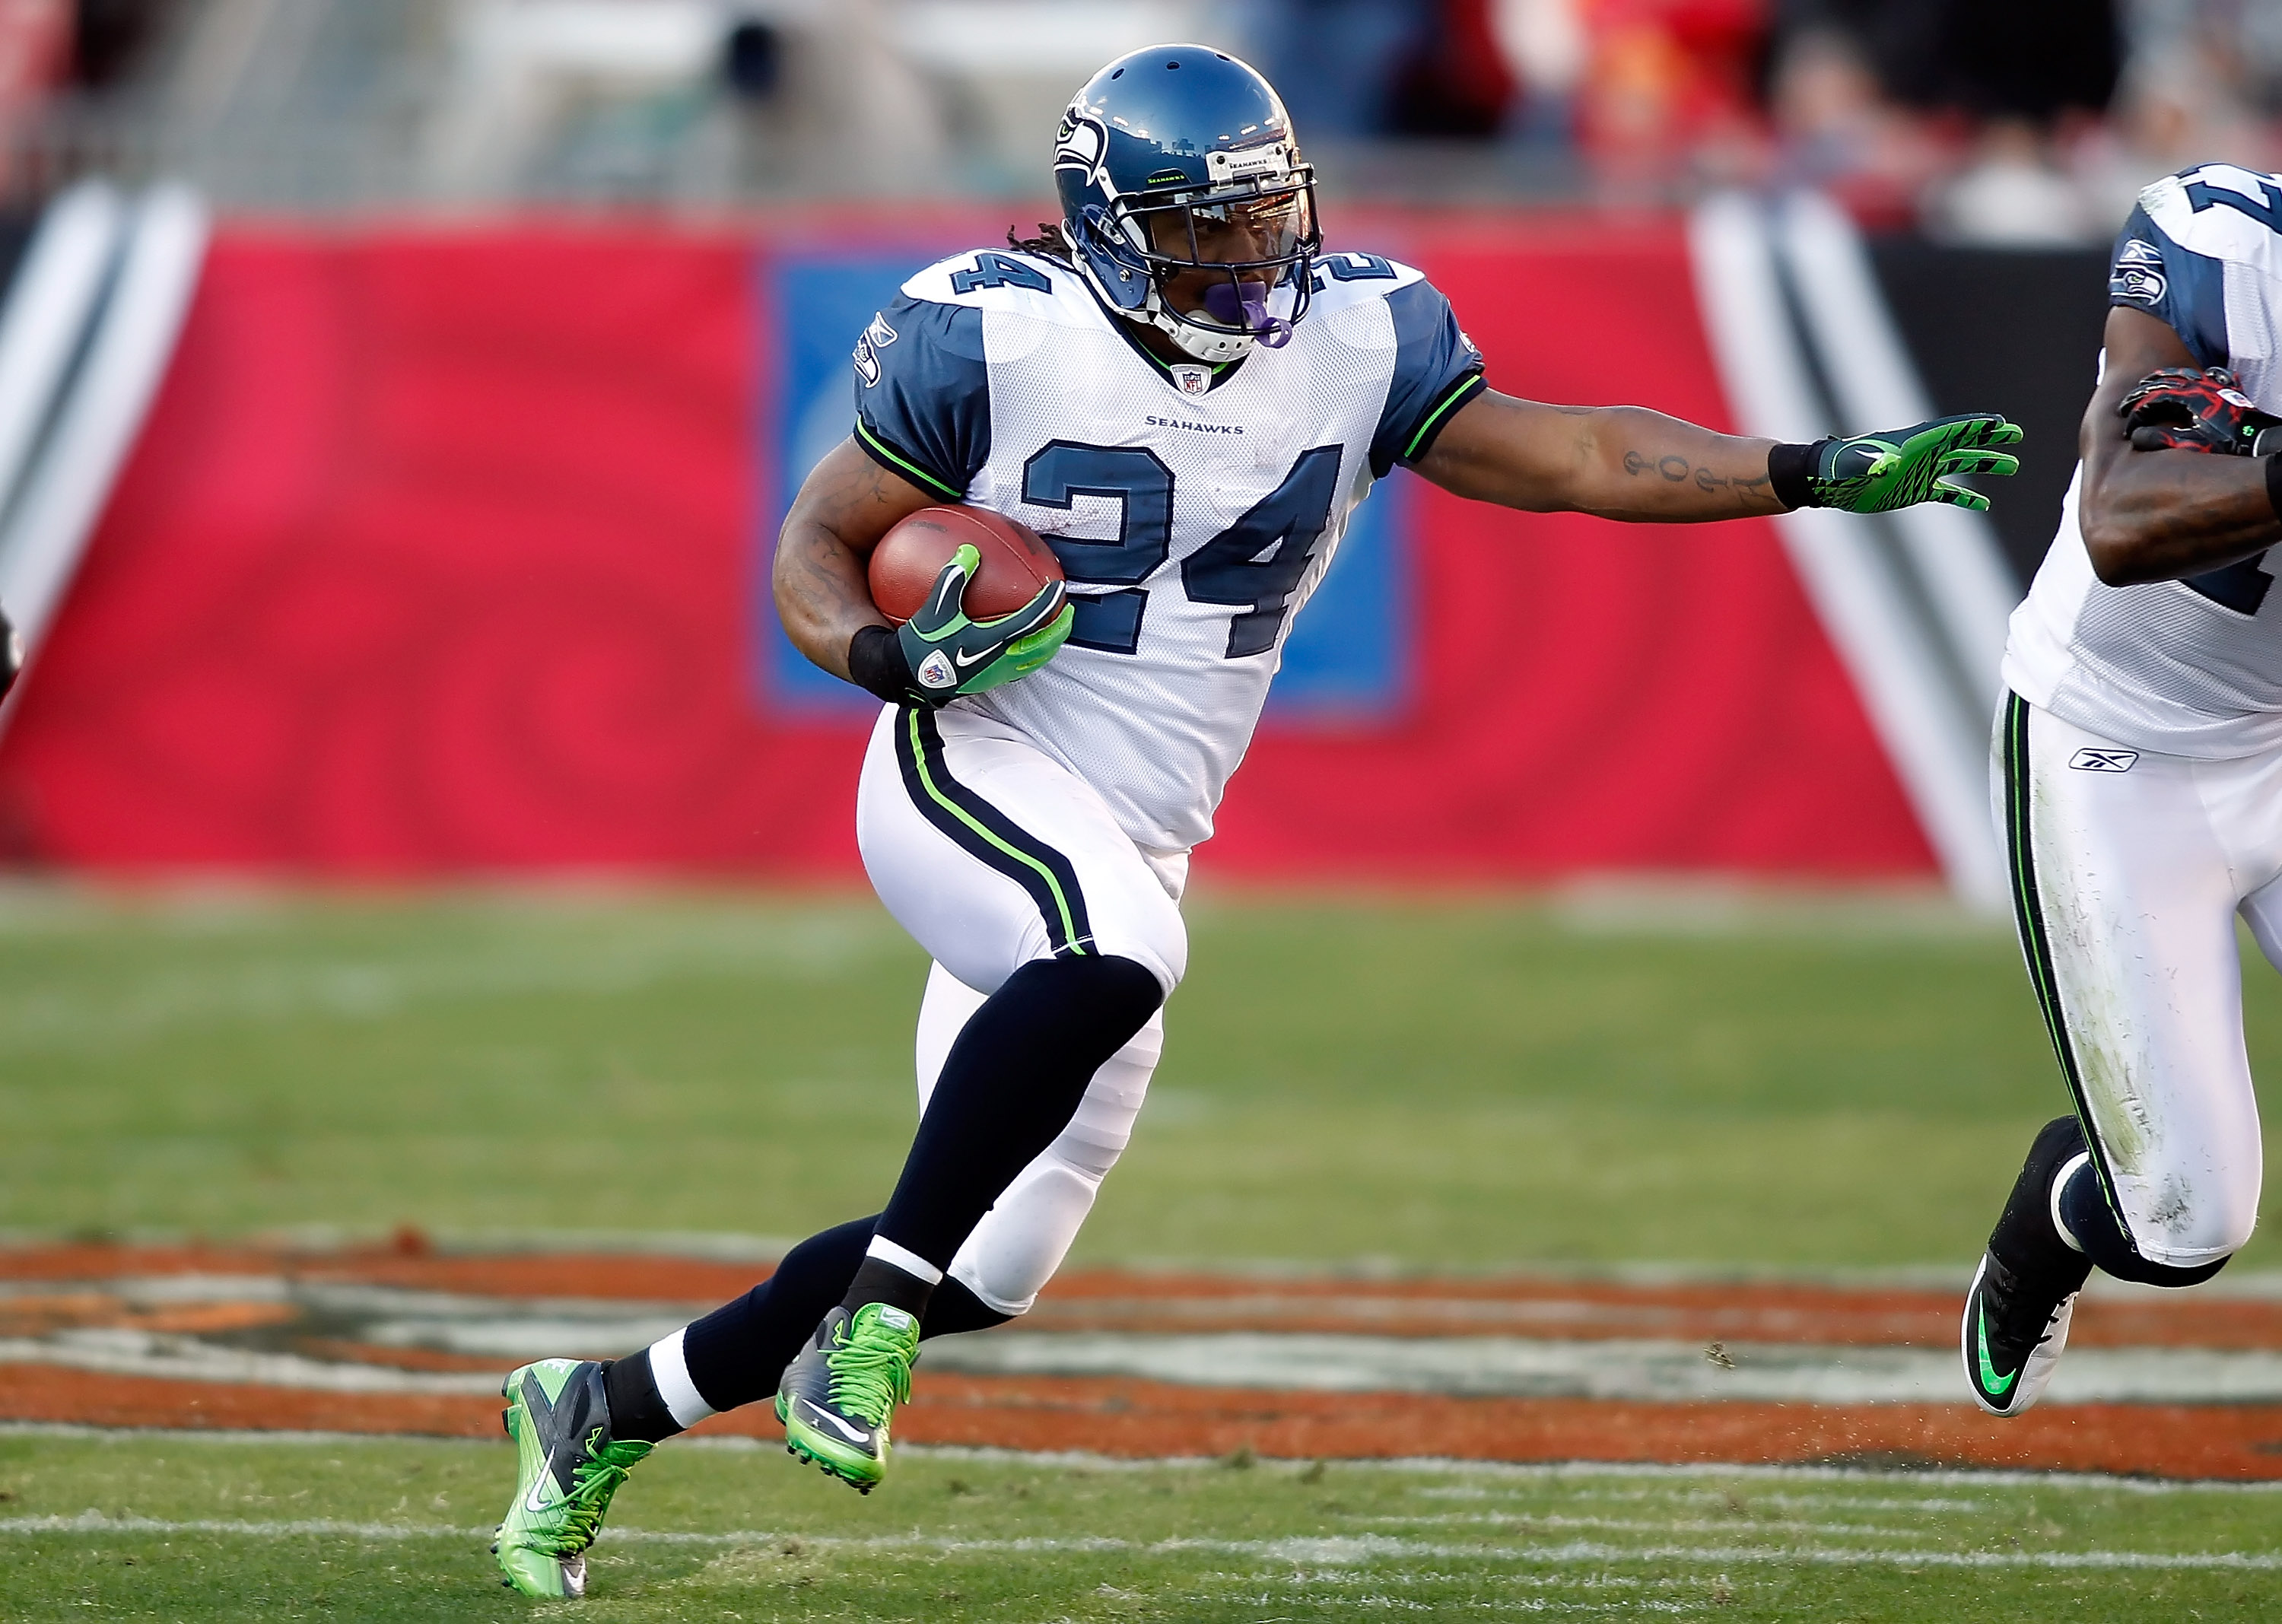 TAMPA, FL - DECEMBER 26: Running back Marshawn Lynch #24 of the Seattle Seahawks runs the ball against the Tampa Bay Buccaneers during the game at Raymond James Stadium on December 26, 2010 in Tampa, Florida. (Photo by J. Meric/Getty Images)